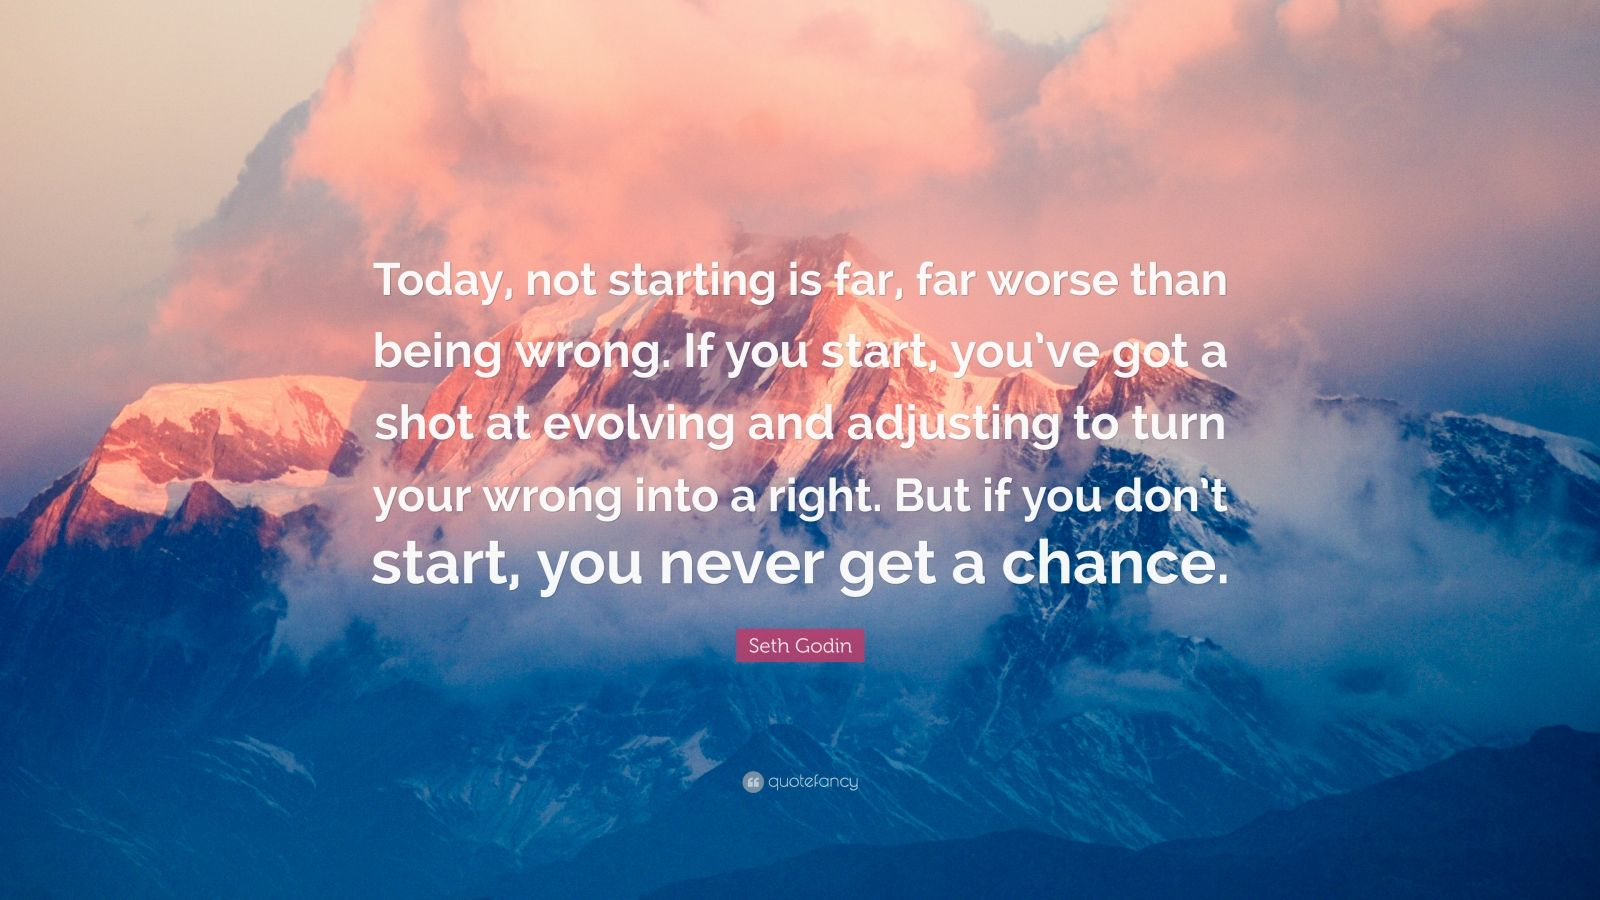 """Seth Godin Quote: """"Today, not starting is far, far worse than being wrong. If you start, you've got a shot at evolving and adjusting to turn your wrong into a right. But if you don't start, you never get a chance."""""""